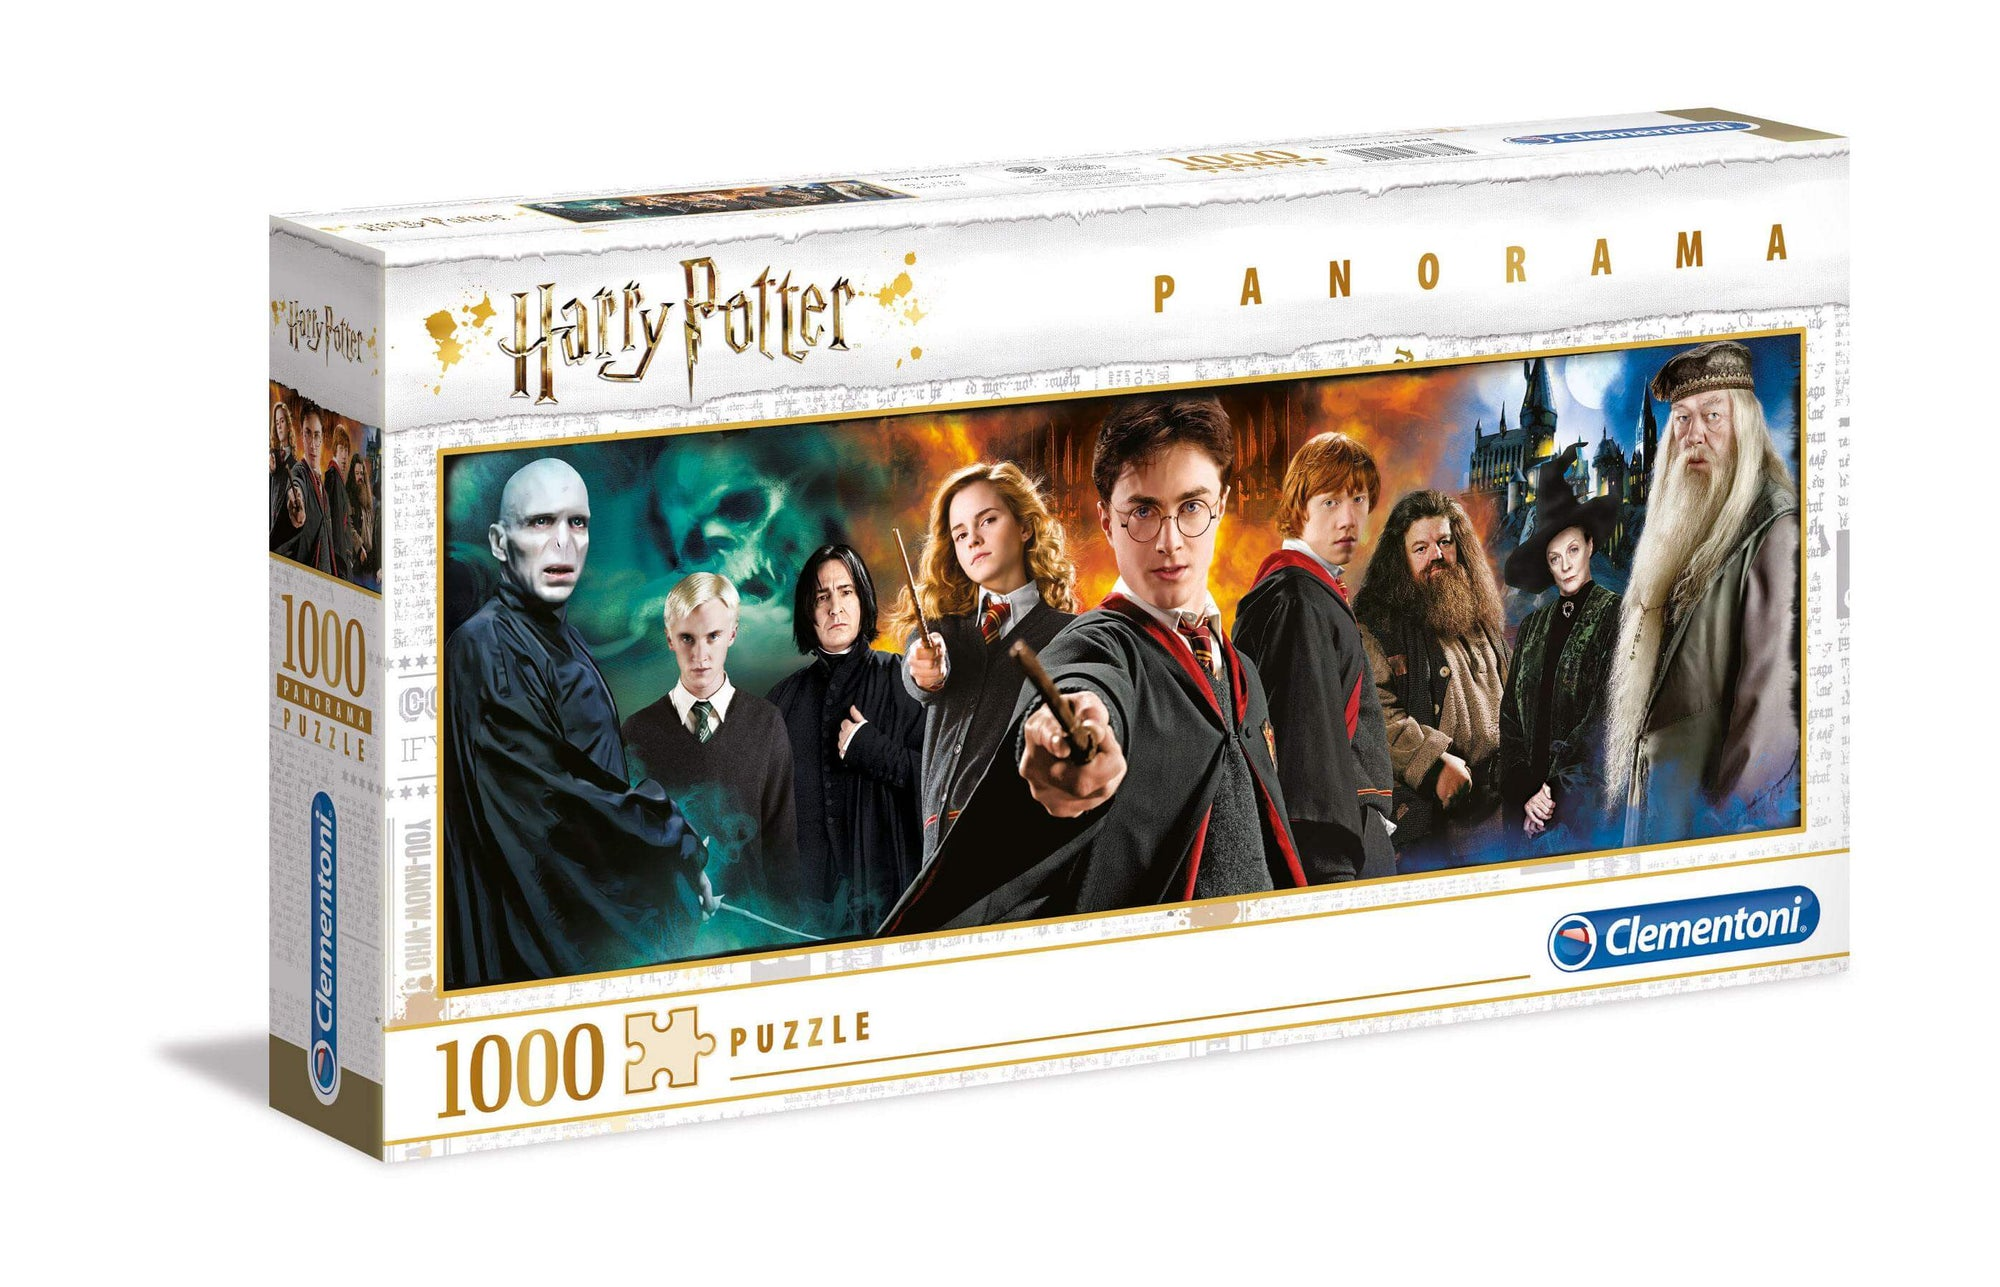 PUZZLE PANORAMA PERSONNAGES (1000 PIÈCES) - HARRY POTTER